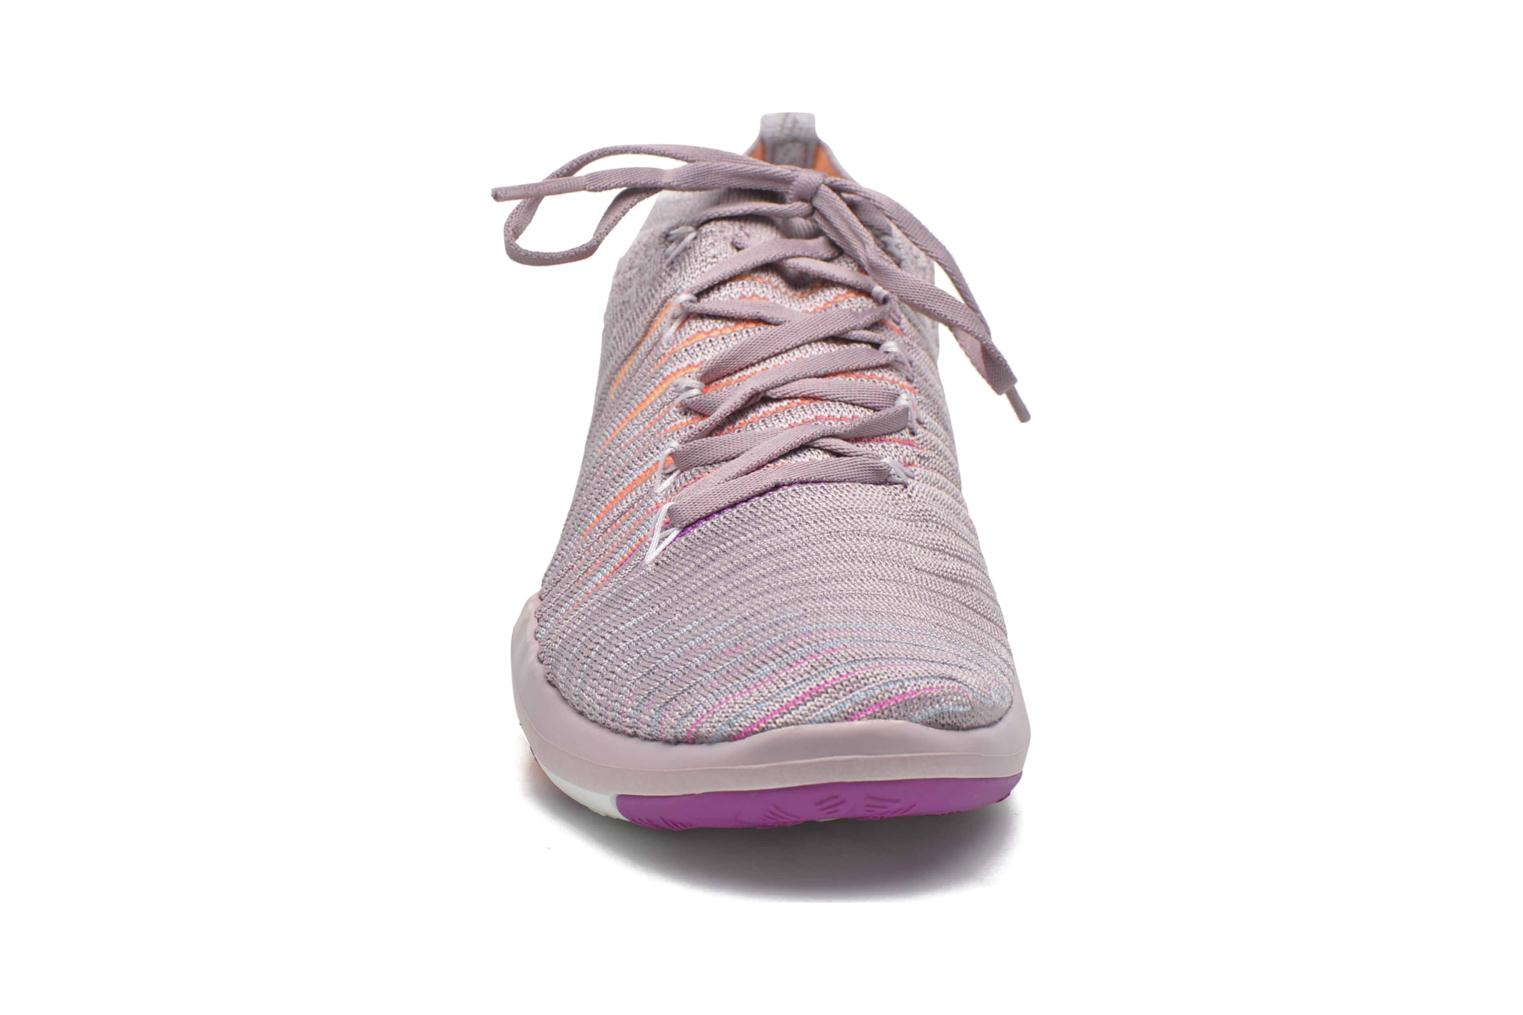 Wm Nike Free Transform Flyknit Plum Fog/Peach Cream-Bright Mango